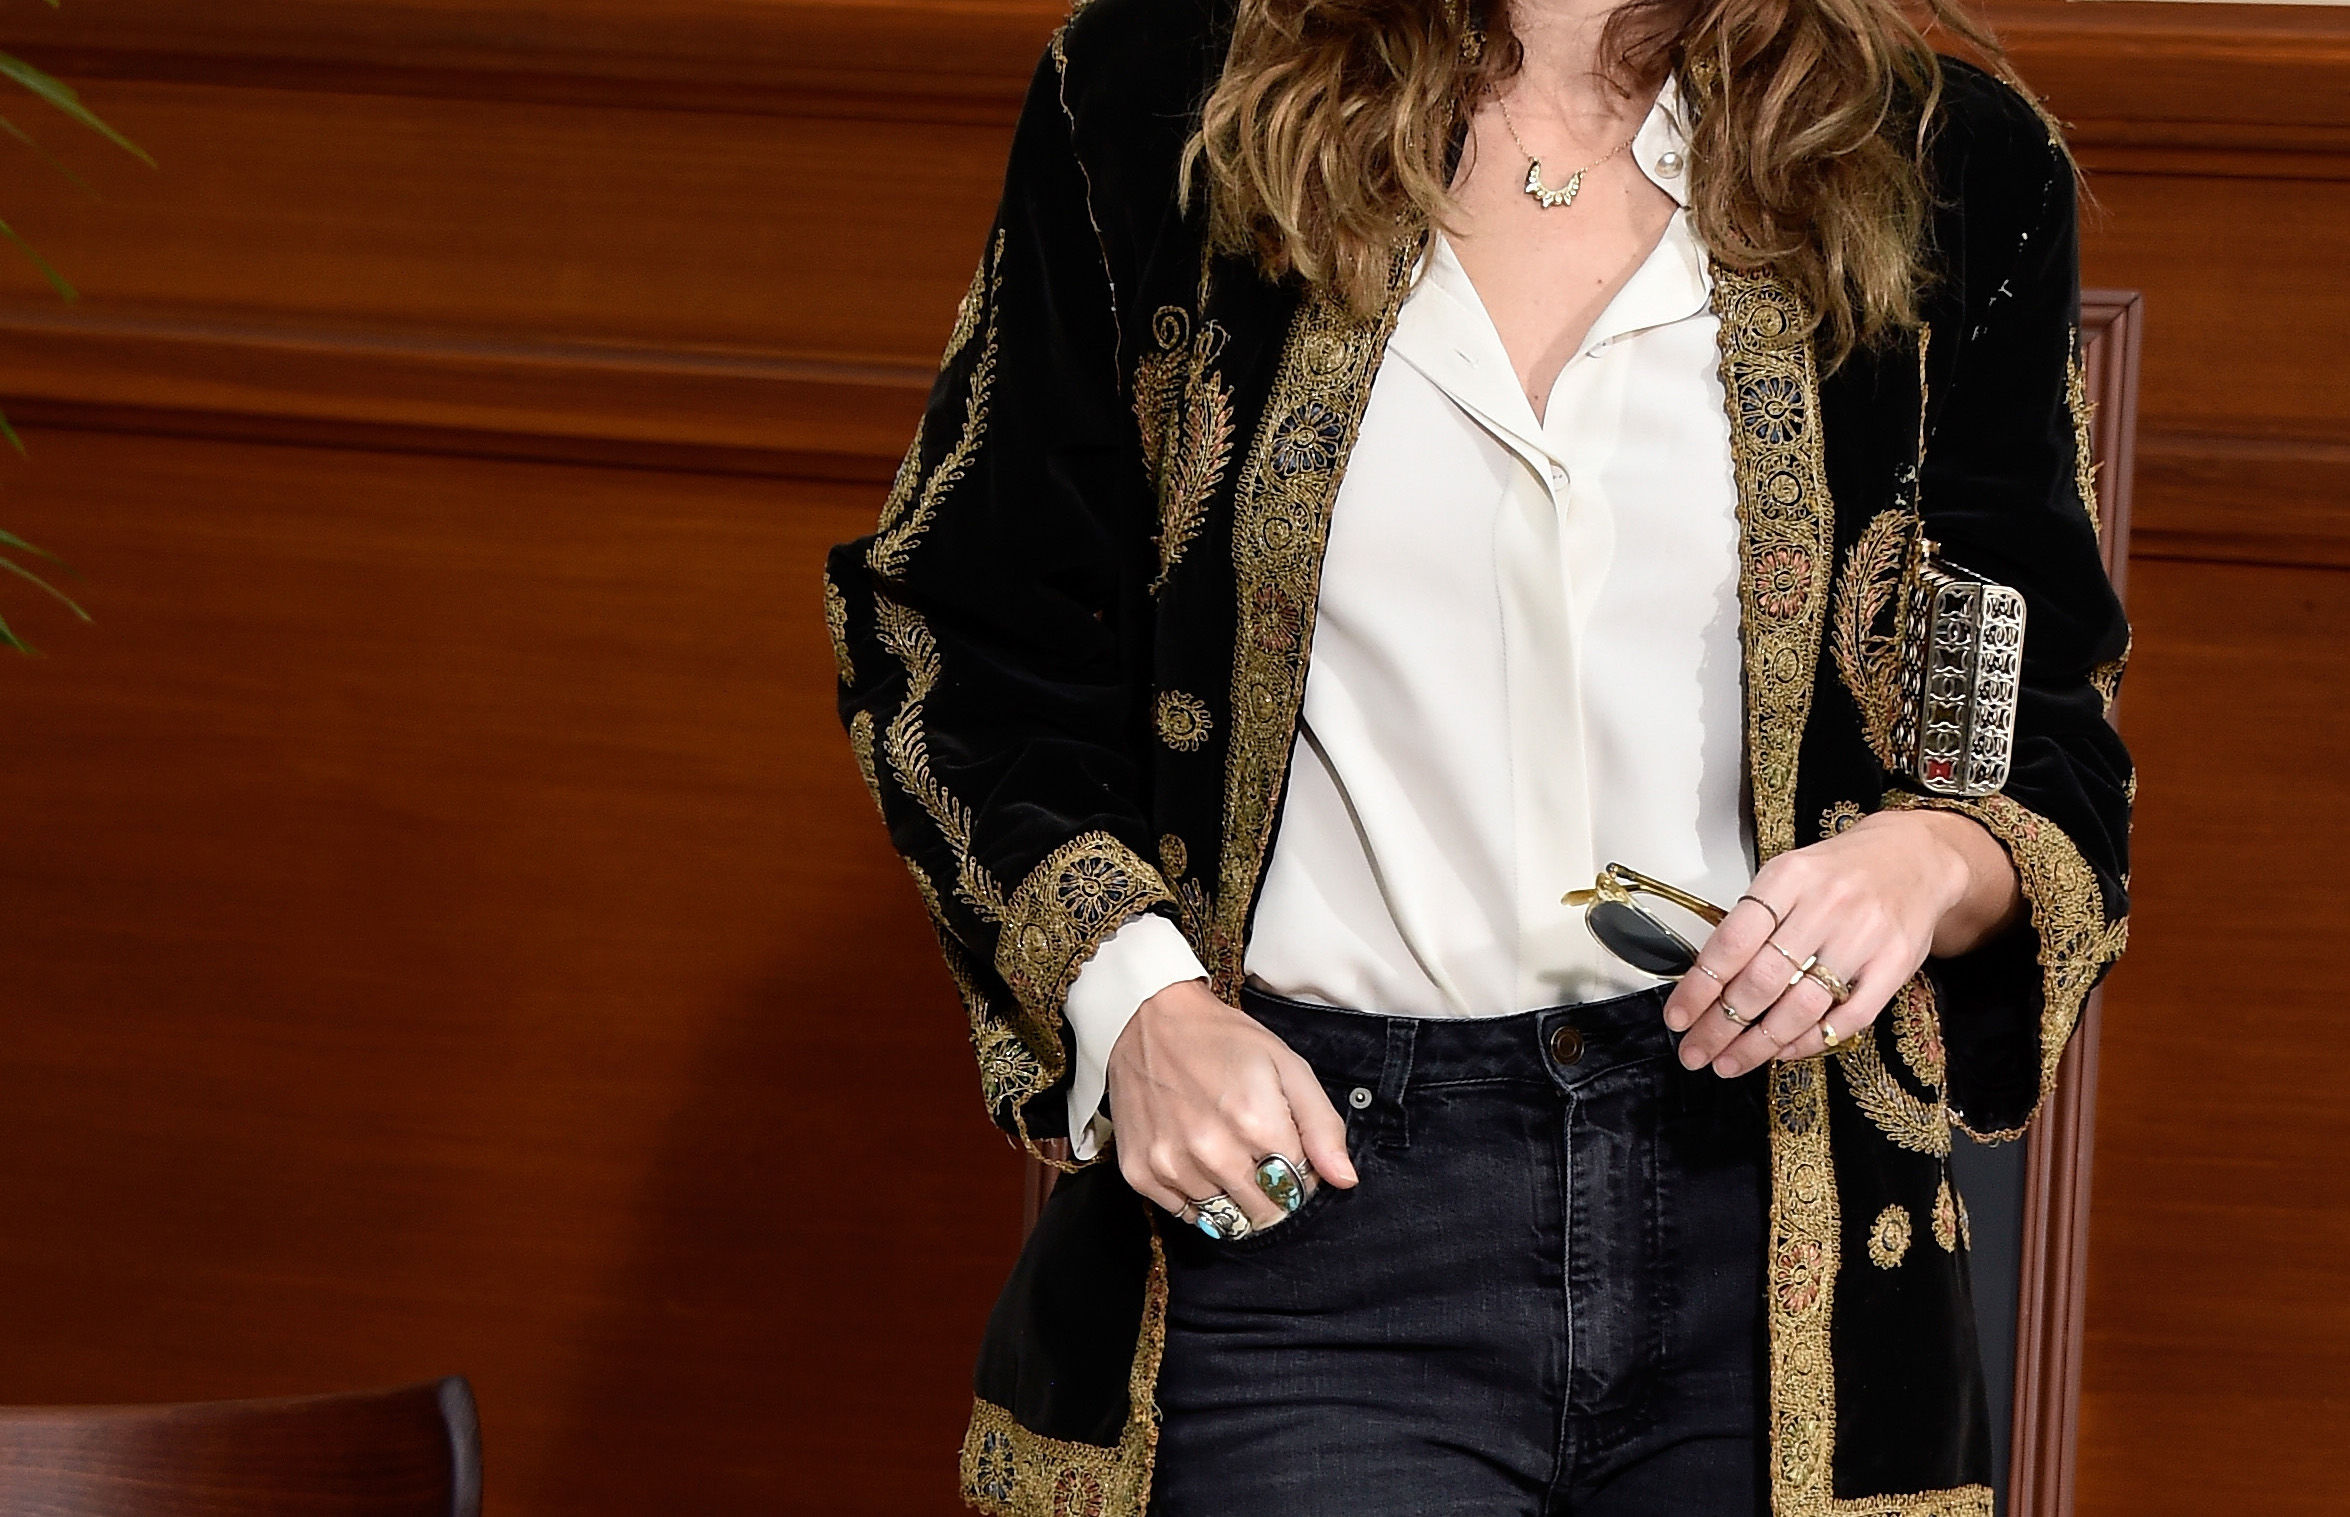 French style inspiration classic elegant cool chic European continental it girls Lou Doillon Audrey Tatou Coco Chanel Clemence Posey Virginie Ledoyen Emmanuelle Alt French Vogue